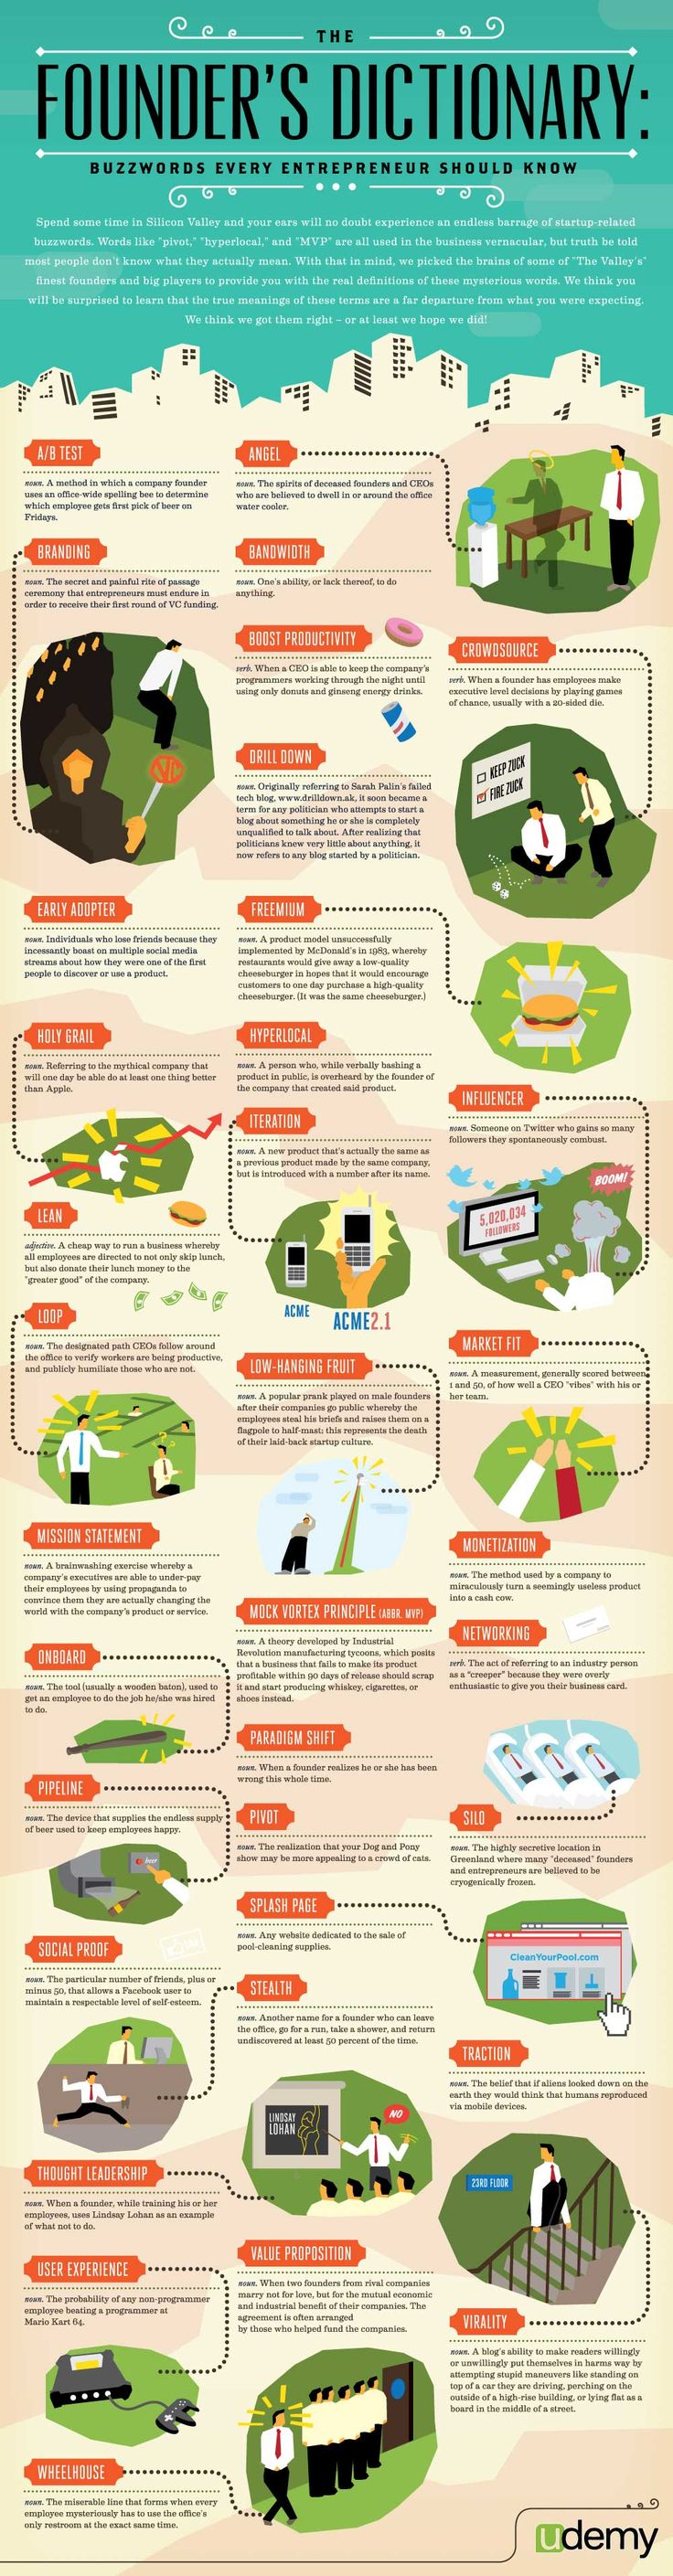 35 #Startup #Buzzwords Every #Entrepreneur Should Know #INFOGRAPHIC